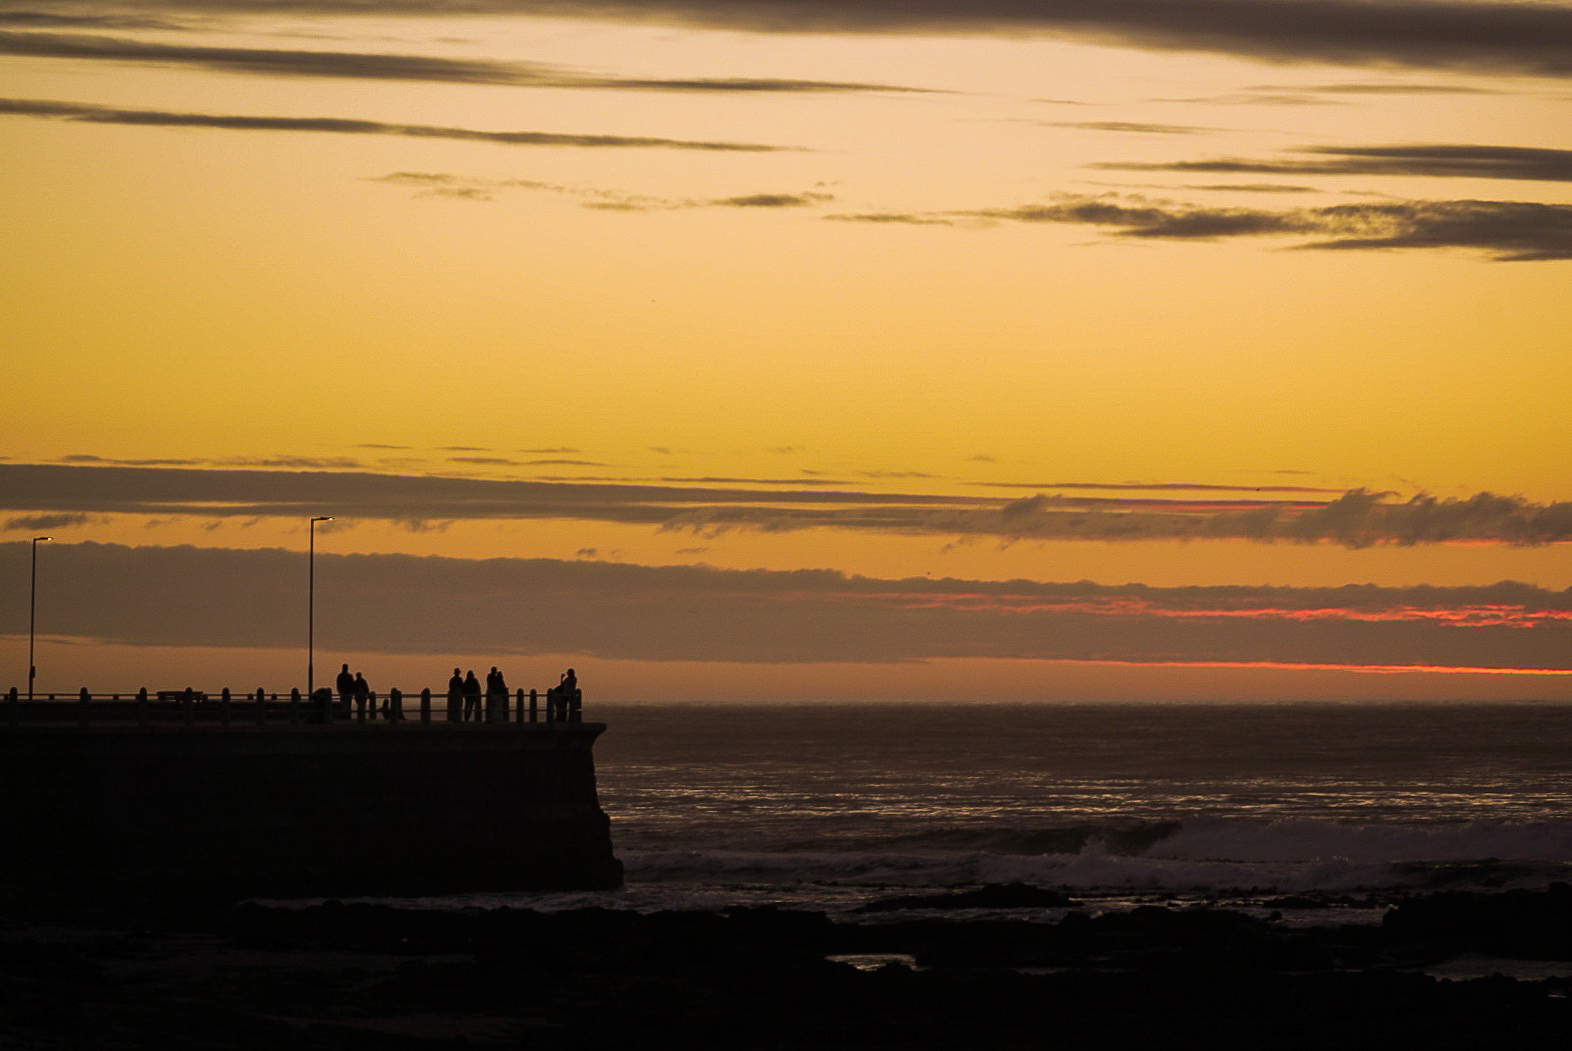 Sunset at Mouille Point